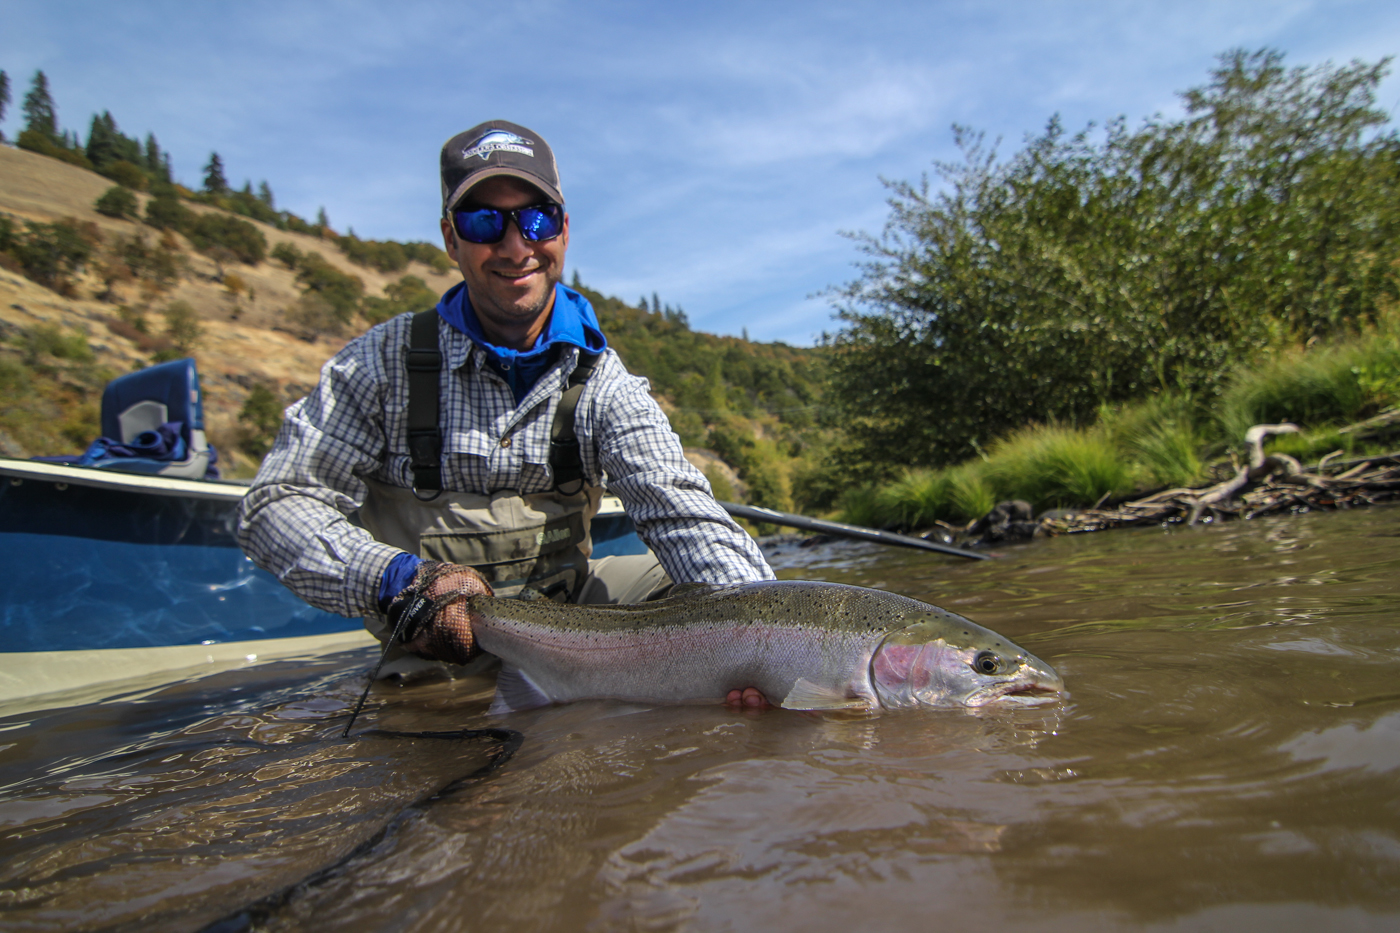 Klickitat river fly fishing report 11 1 16 for Fishing reports washington